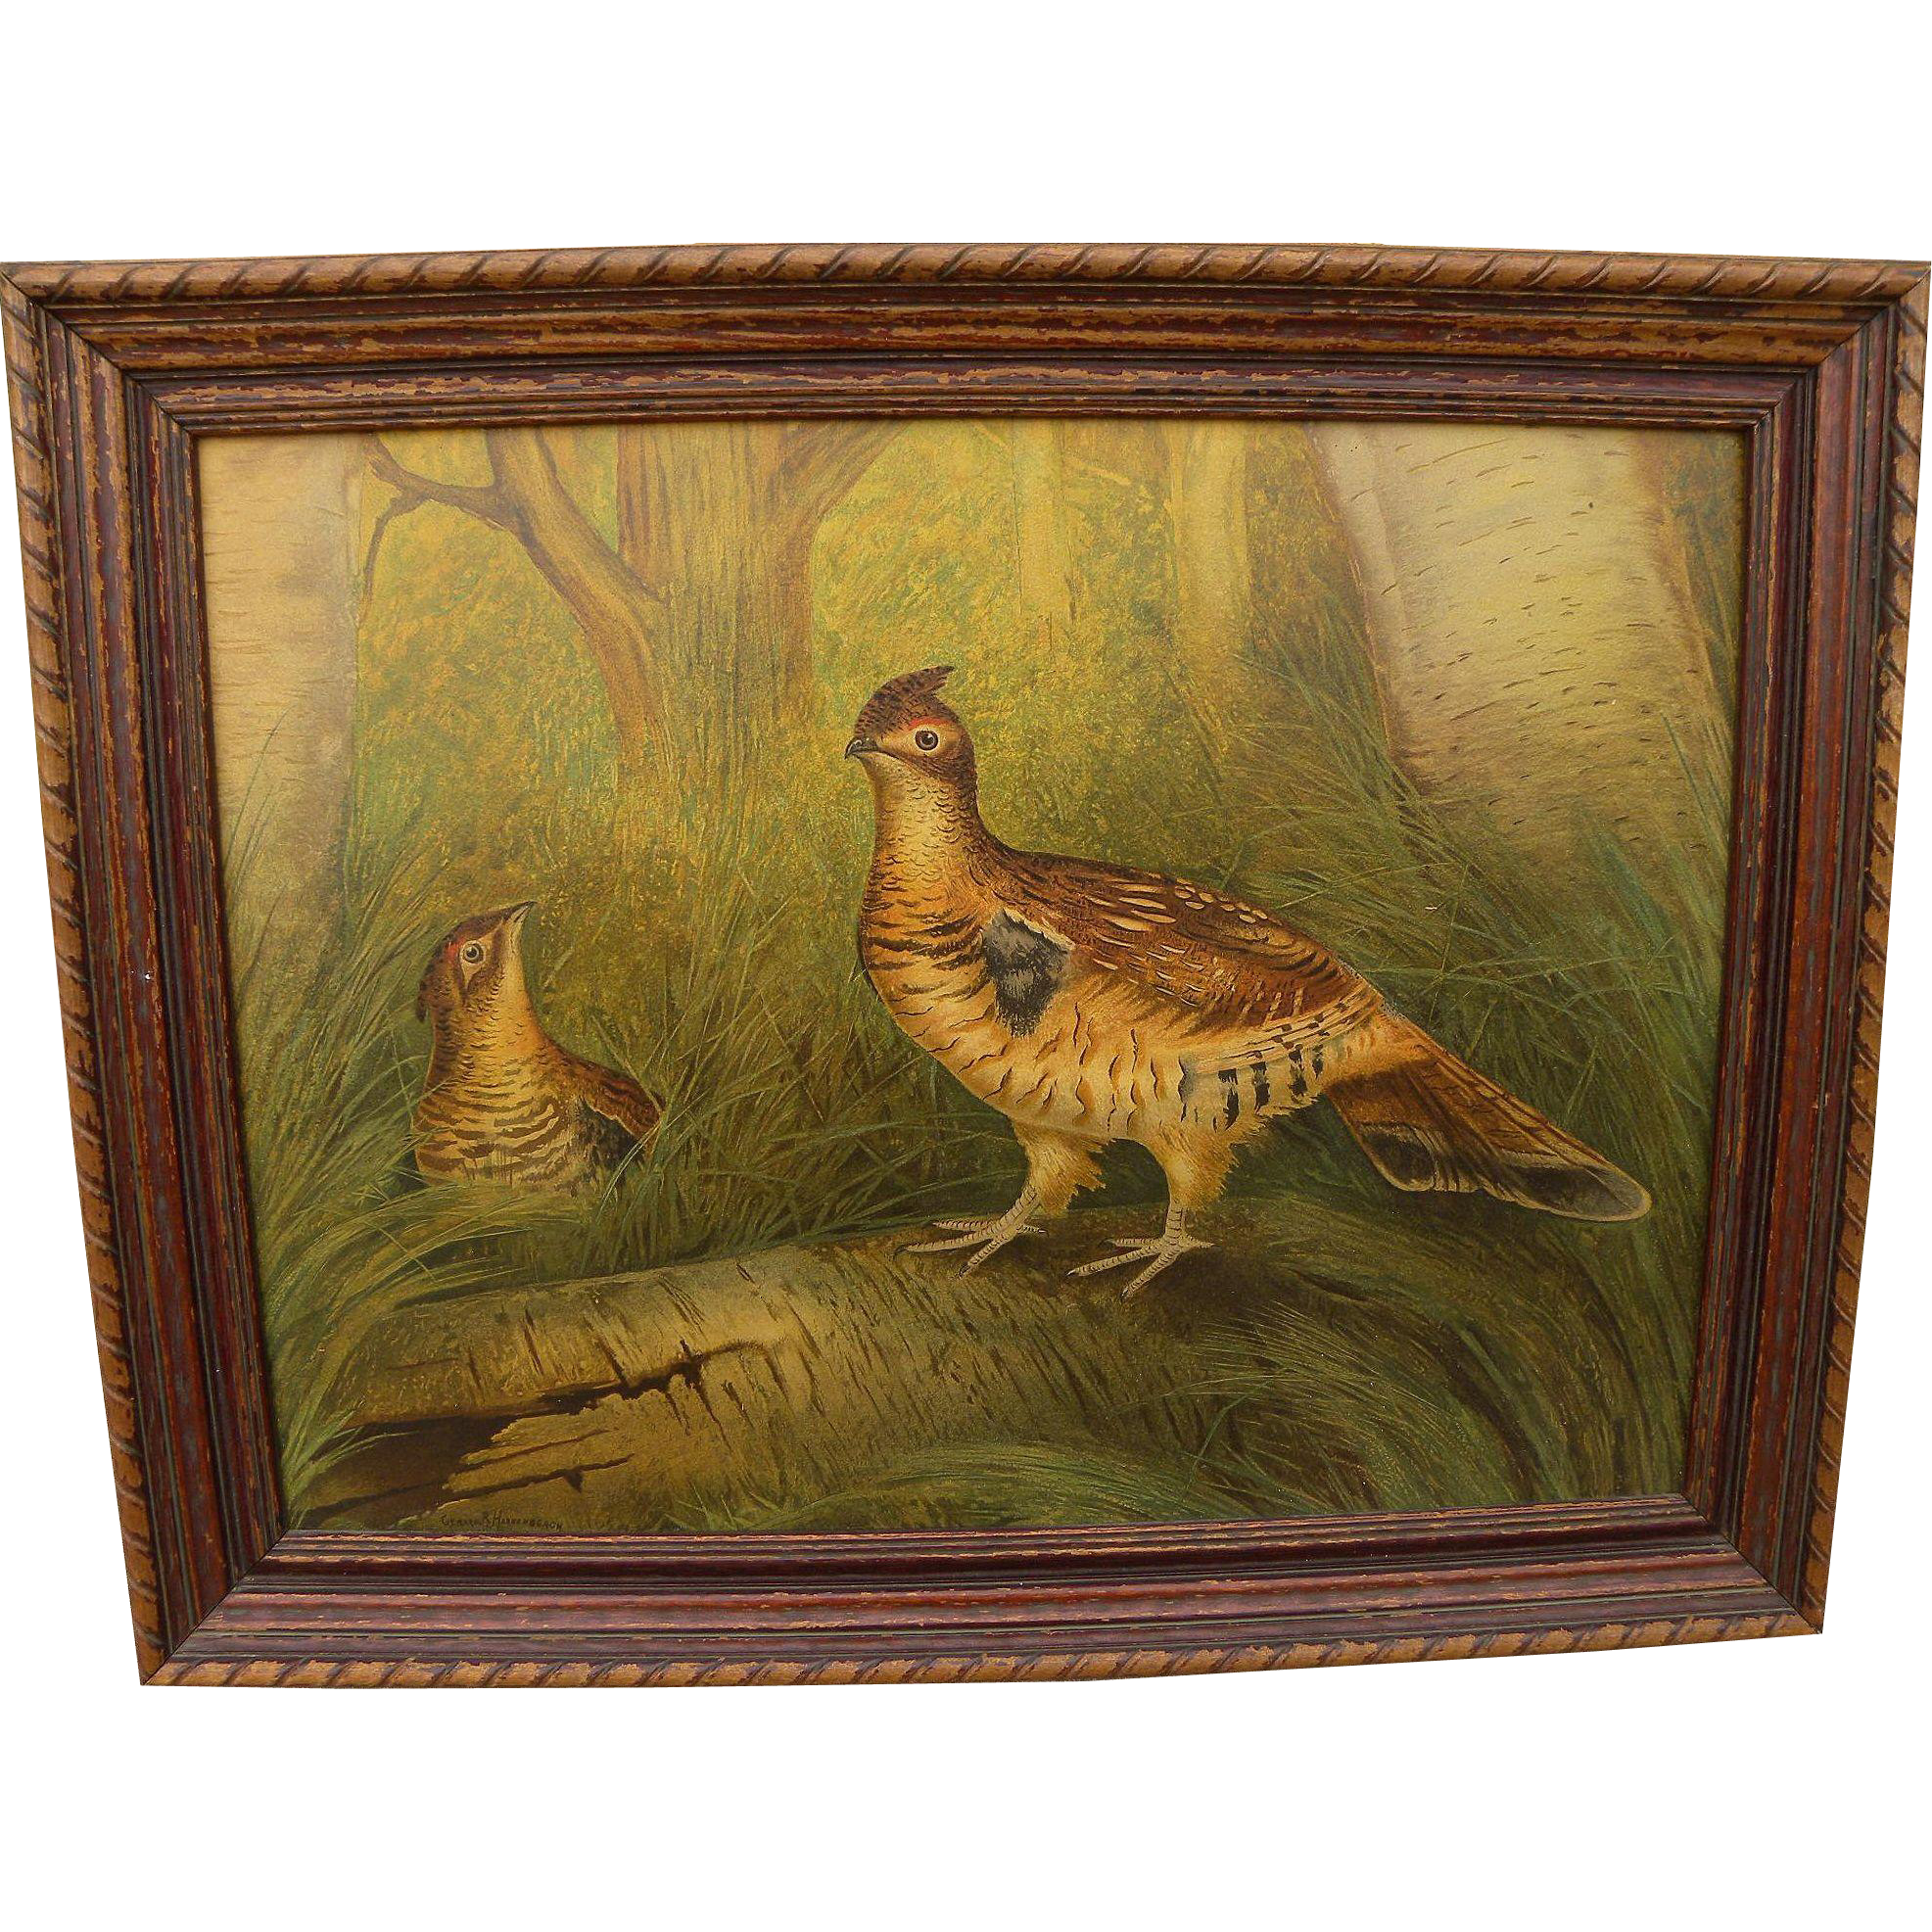 After GERARD RUTGERS HARDENBERGH (1855-1915) chromolithograph print of two game birds excellent condition